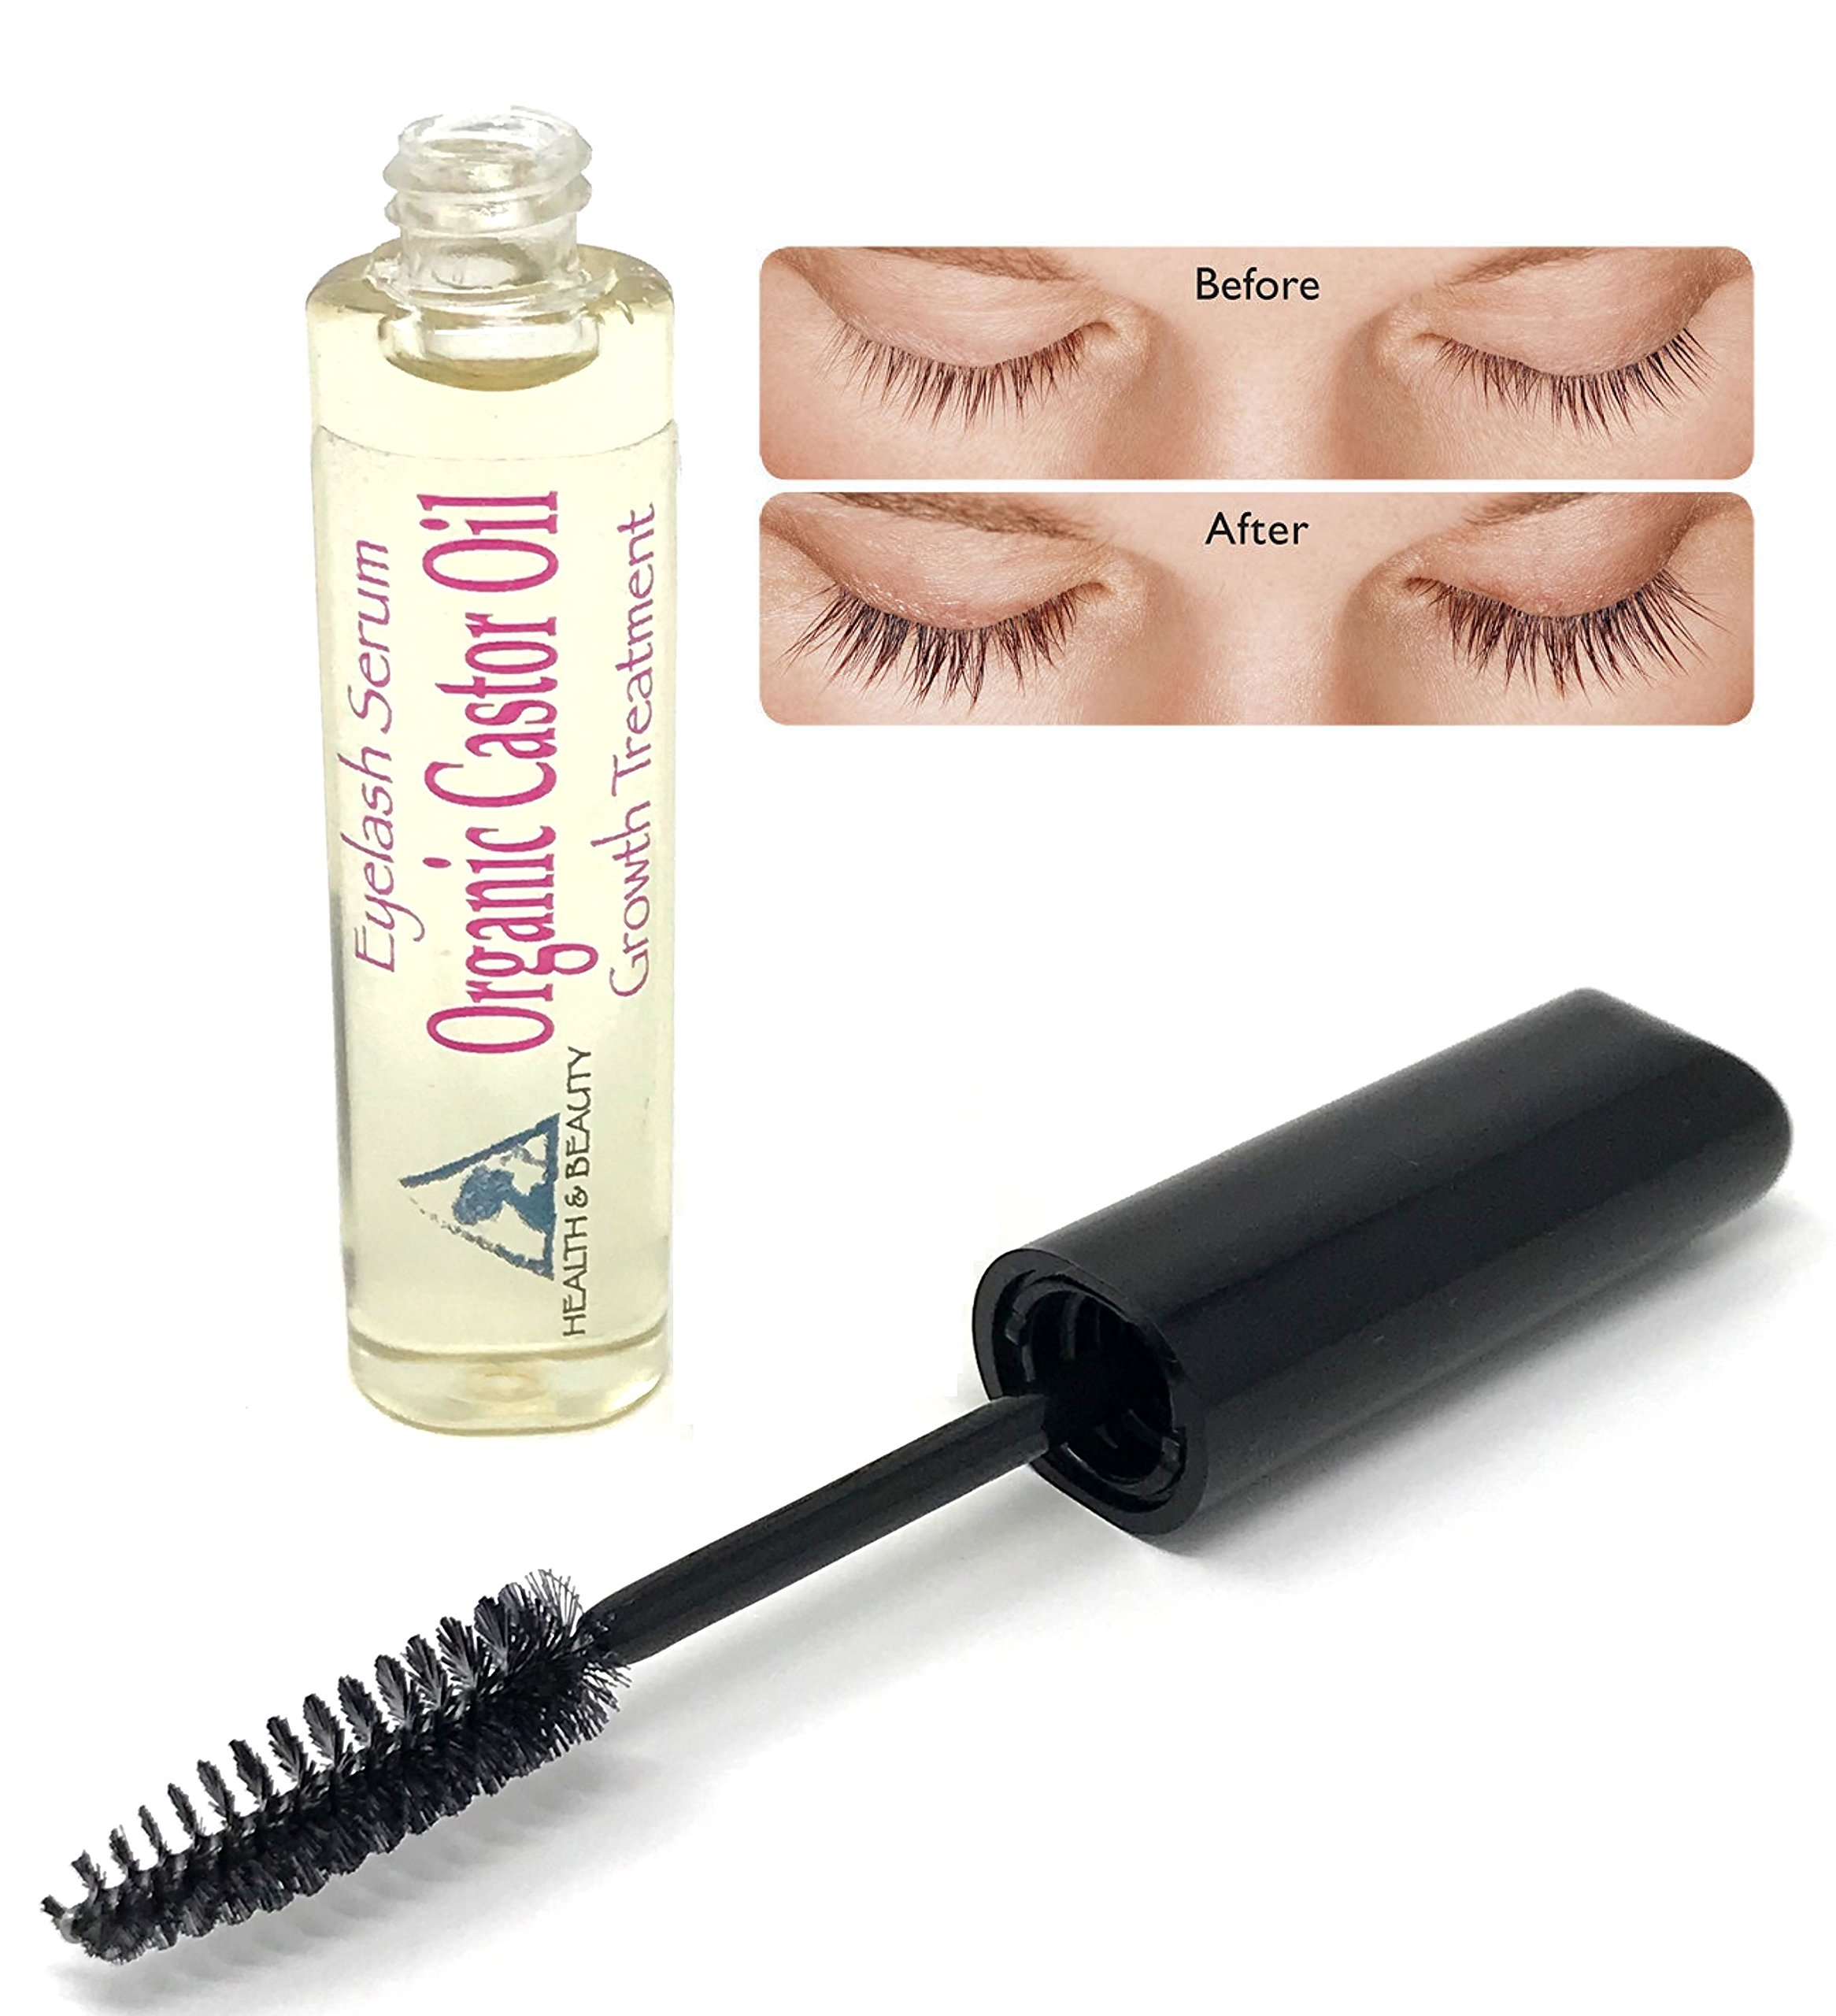 Castor Oil Organic Stimulate Eyelash Growth Serum by H&B OILS CENTER Grows Longer Thicker Eyelashes &